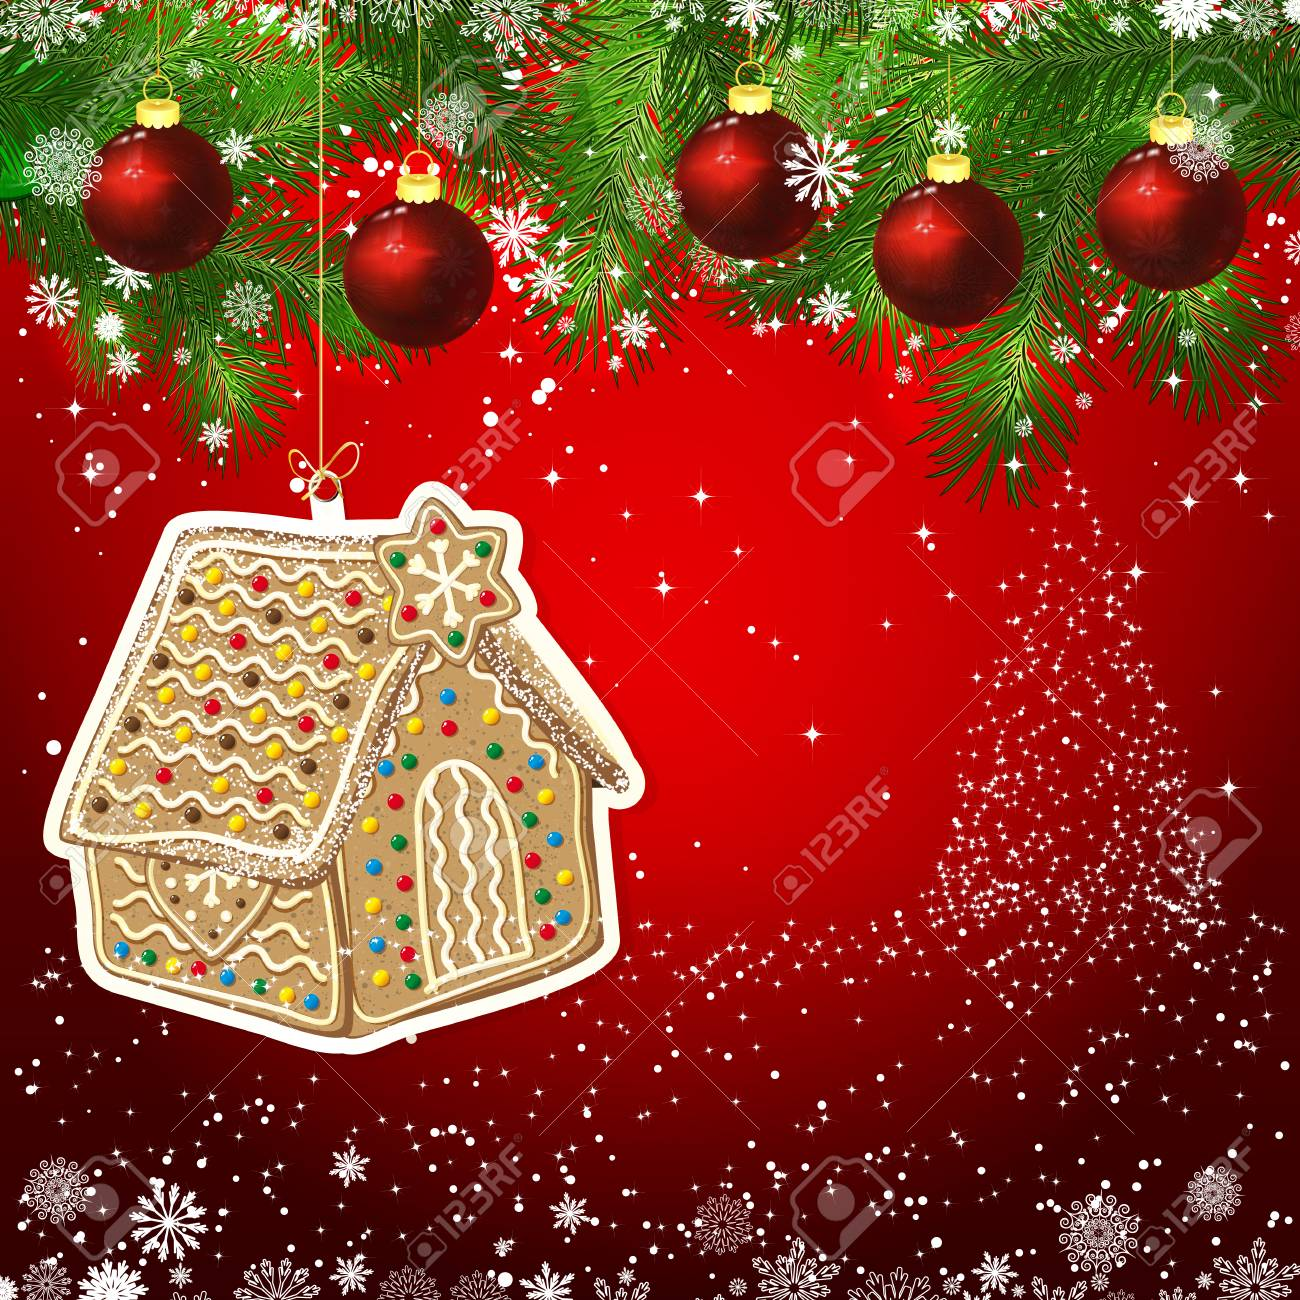 gingerbread new year design background template card whit red christmas balls on the green branches